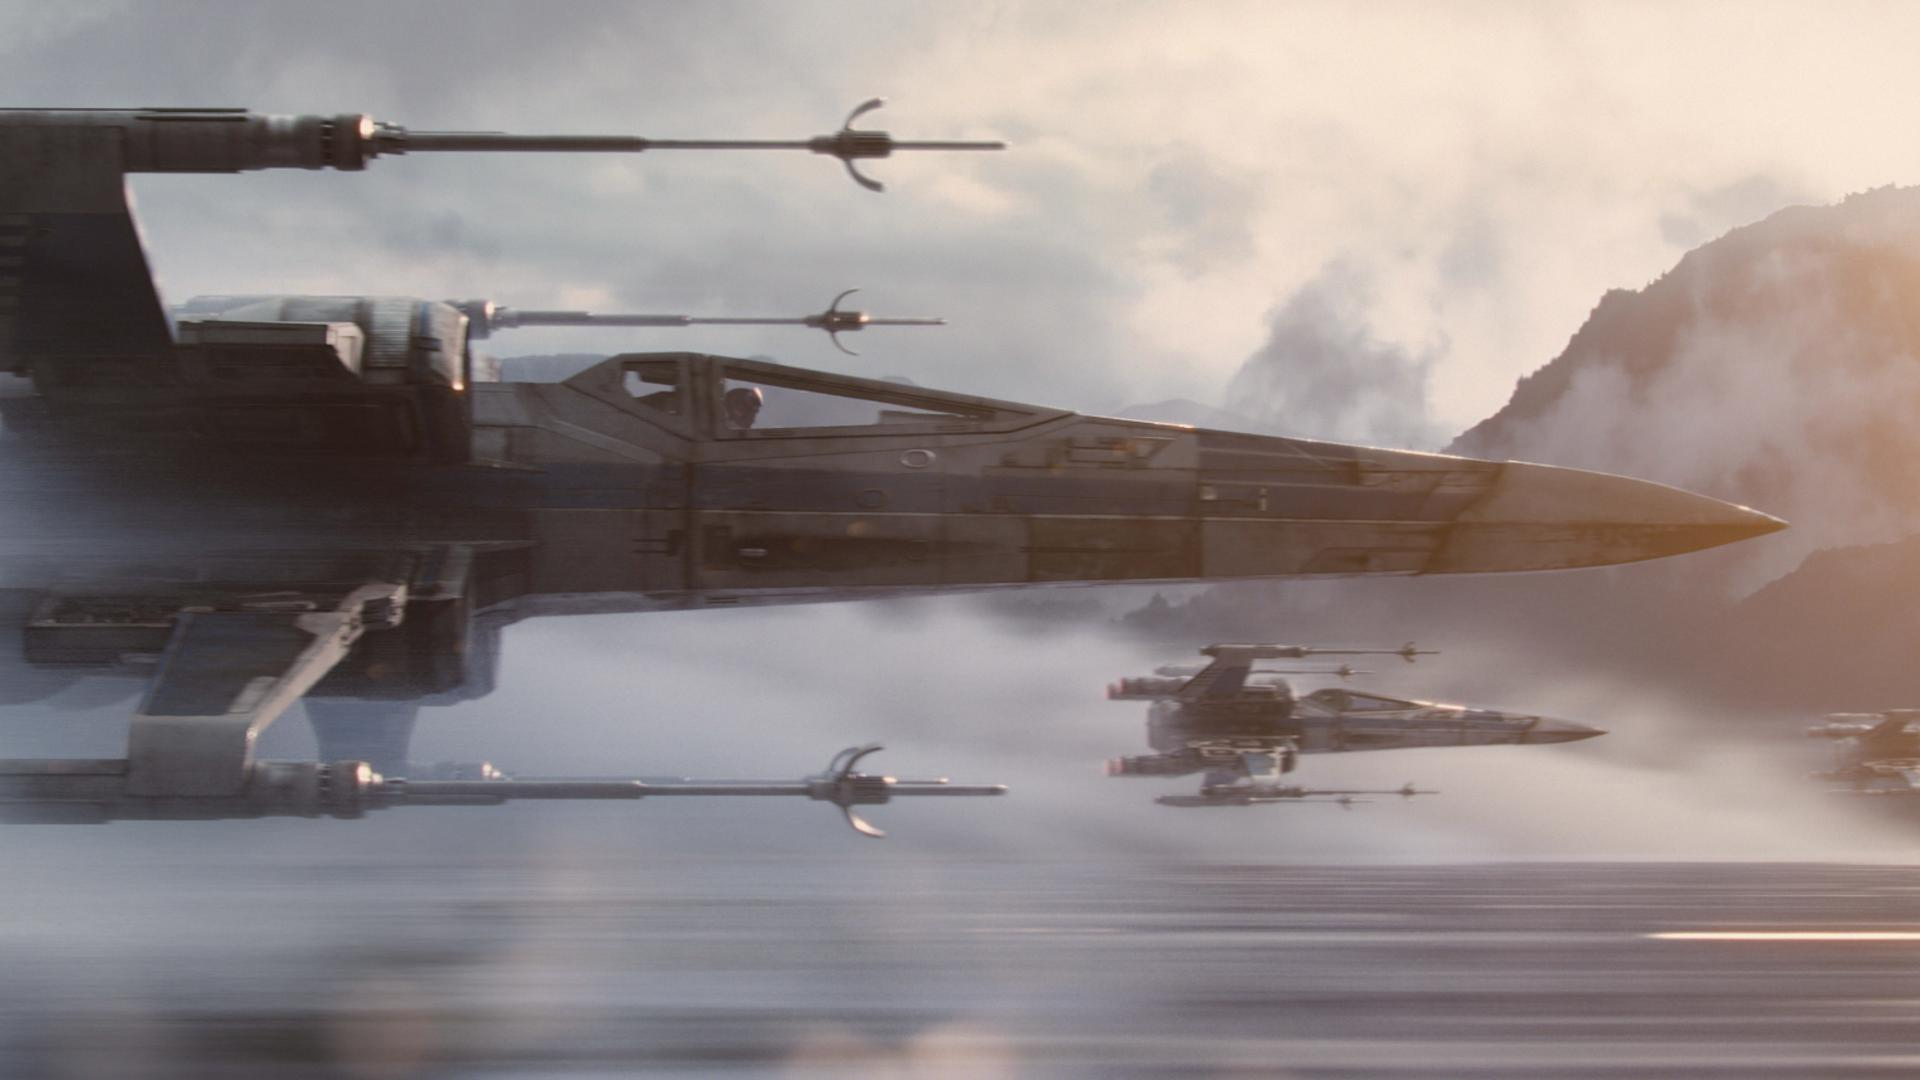 Star Wars: The Force Awakens X-Wing Starfighters Ph: Film Frame ©Lucasfilm 2015